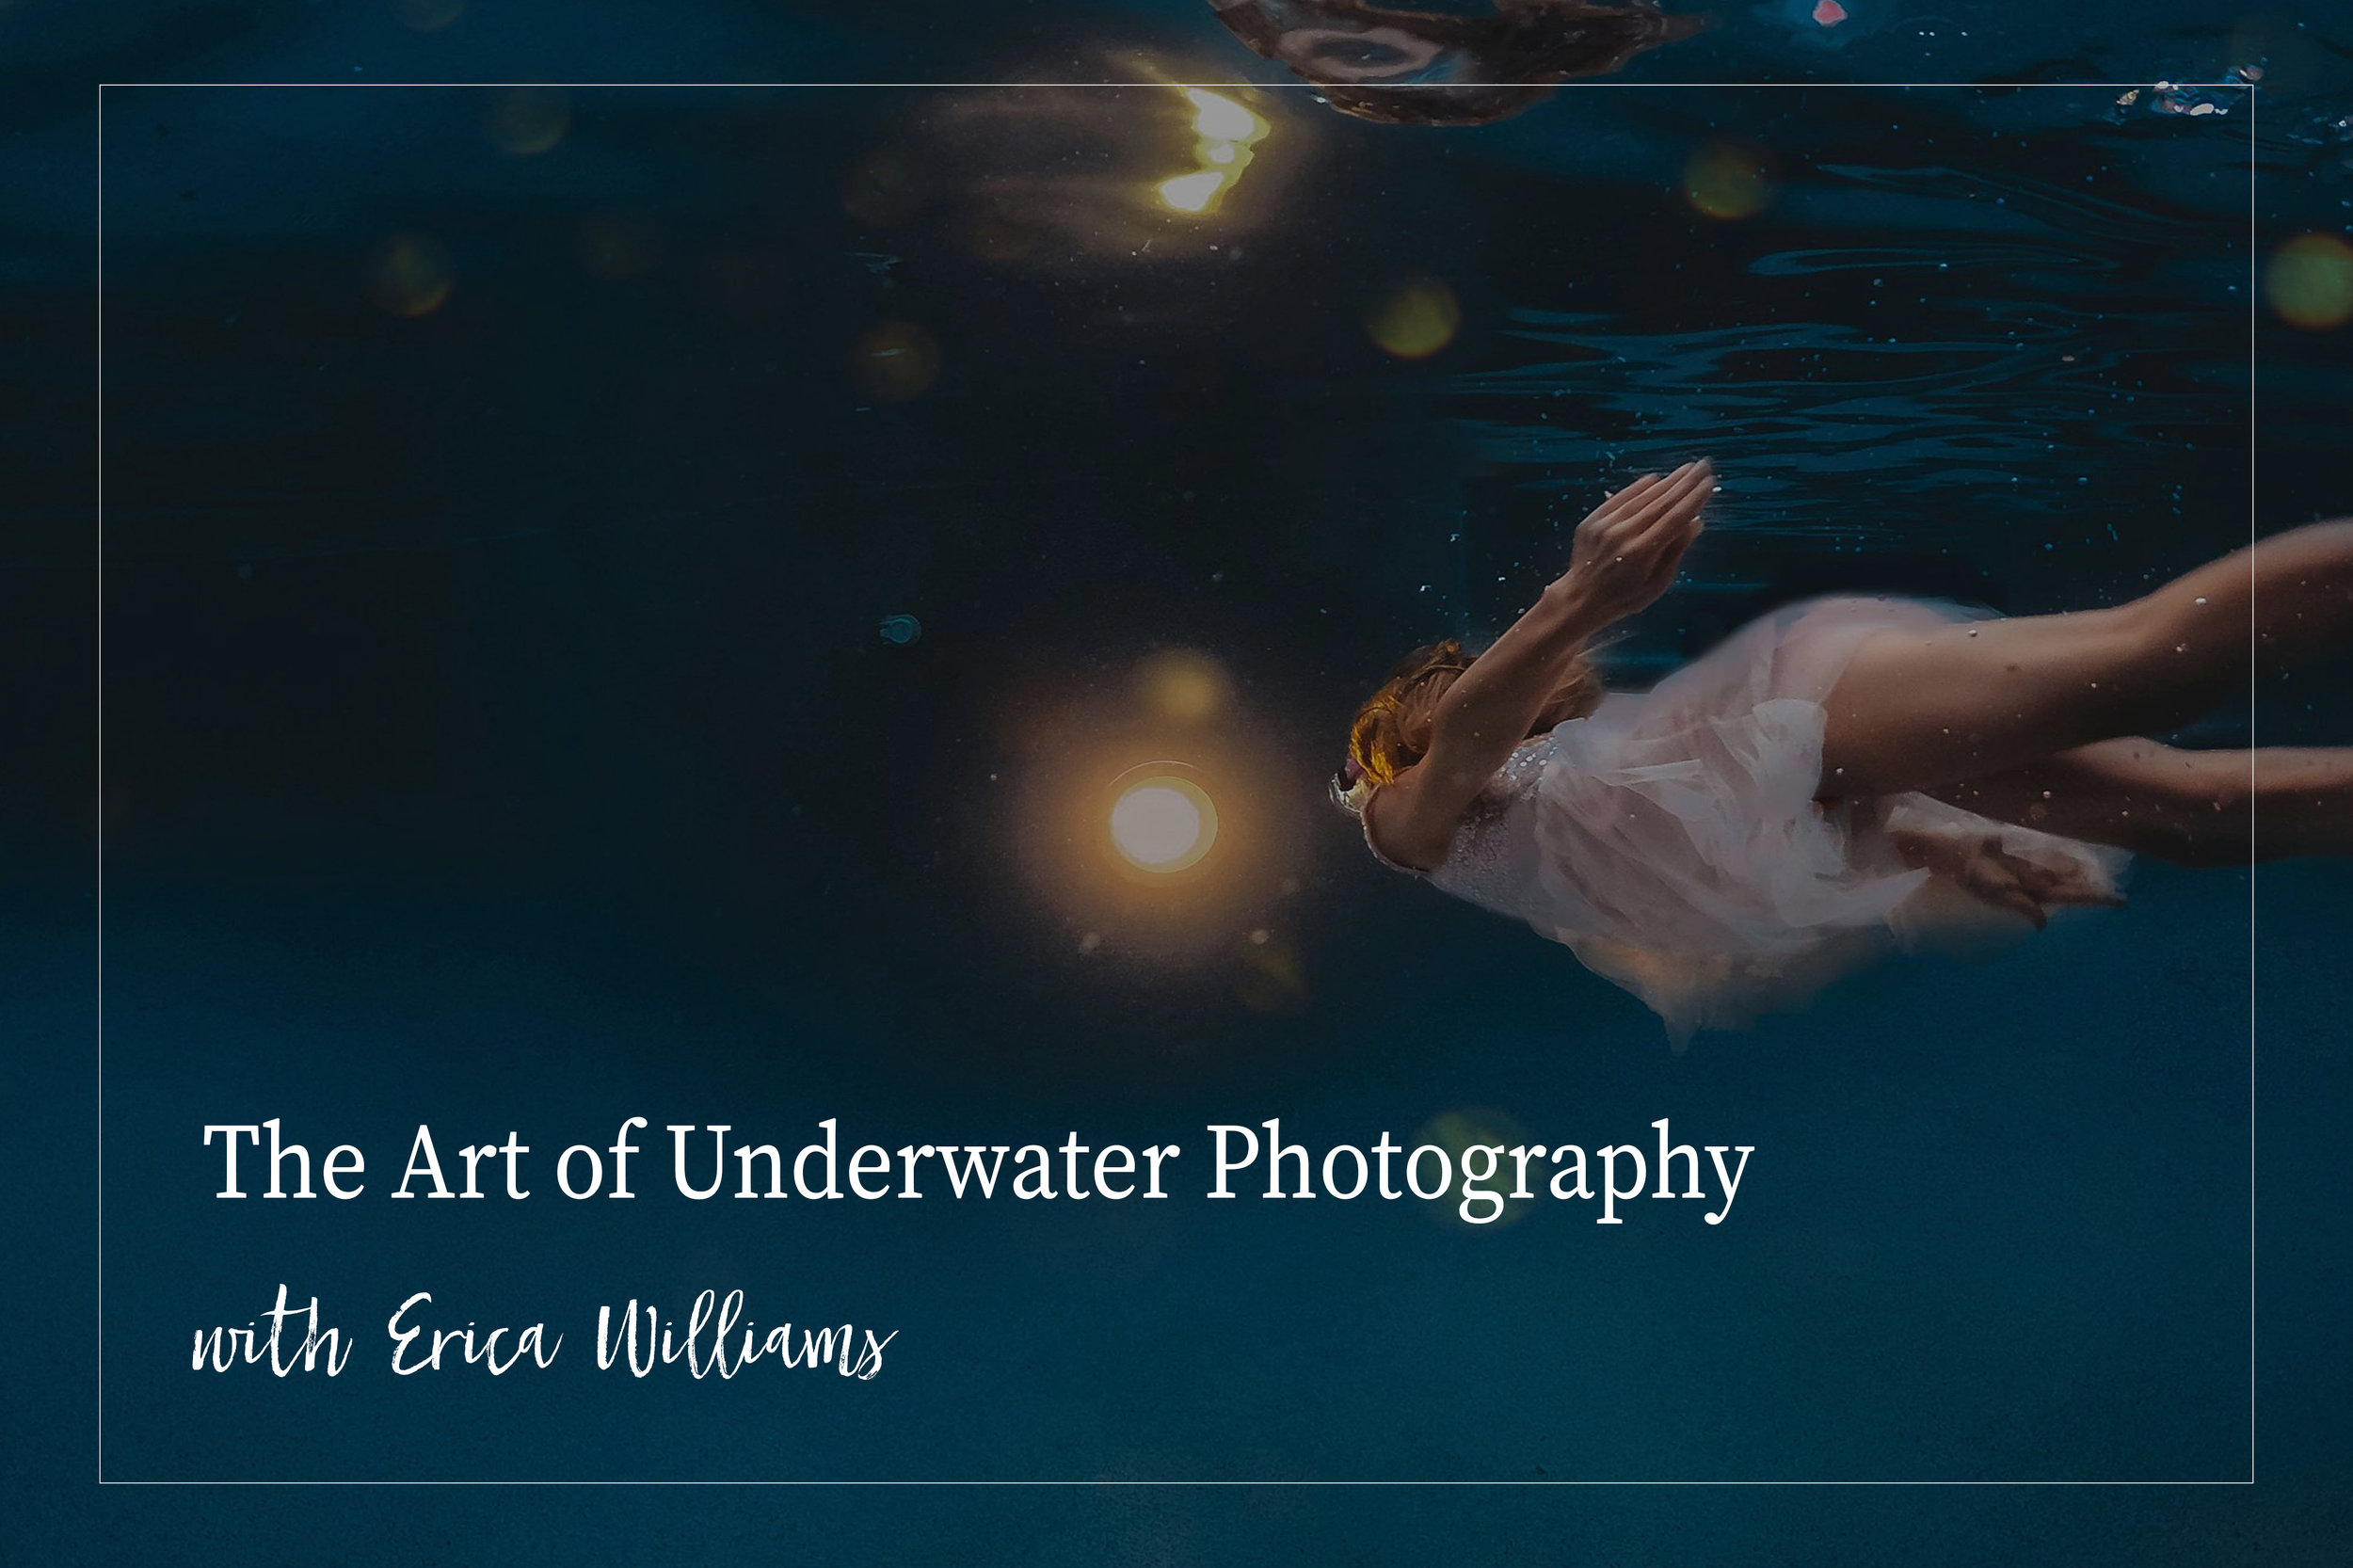 Art of Underwater Photography - with Erica Williams